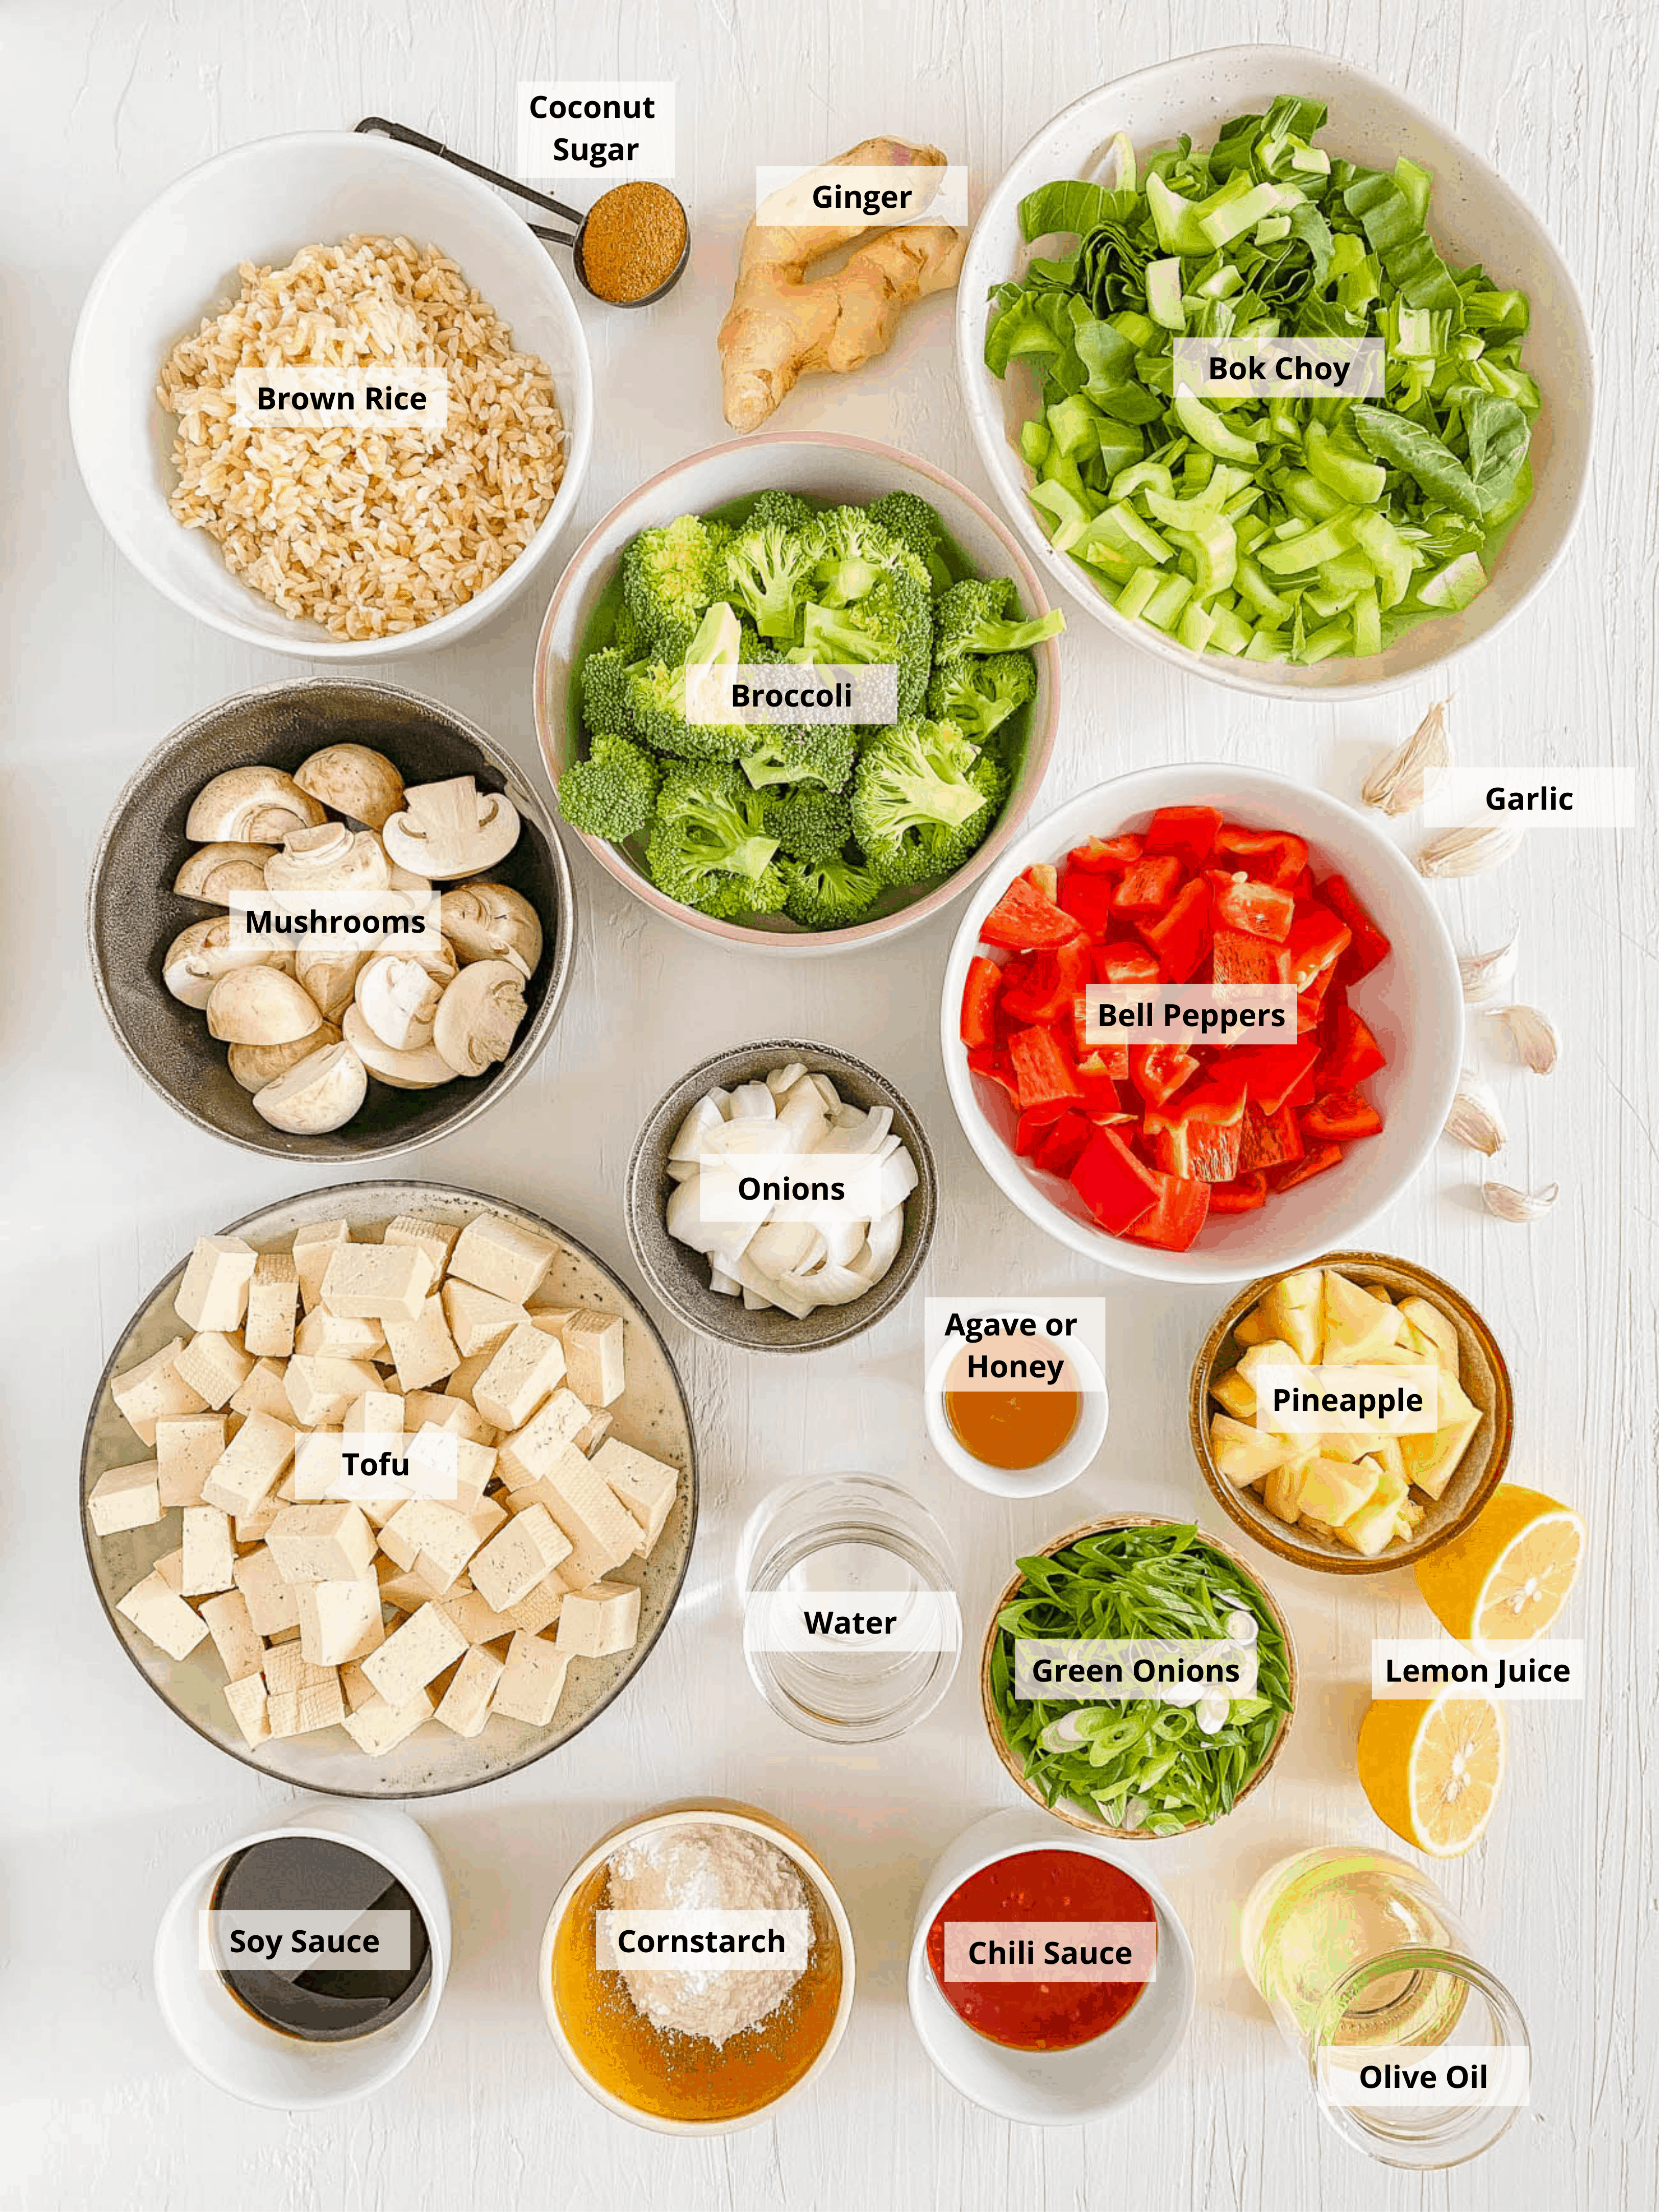 sweet and sour tofu ingredients